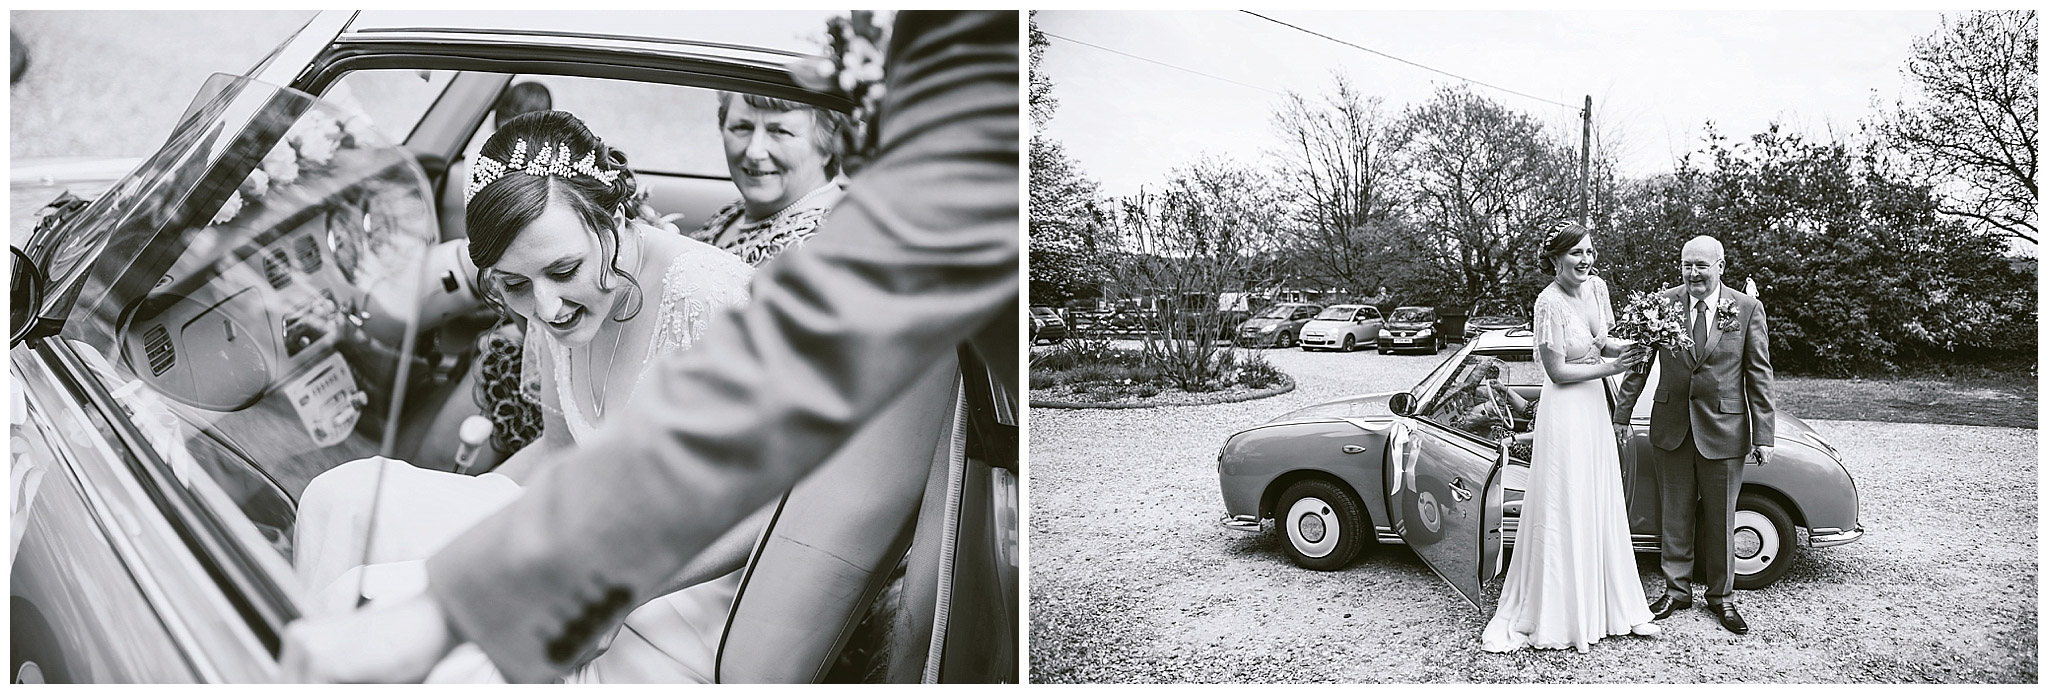 Sarah-&-Dan-The-Old-Vicarage-Wedding-Venue-Dorset-Photographer-9